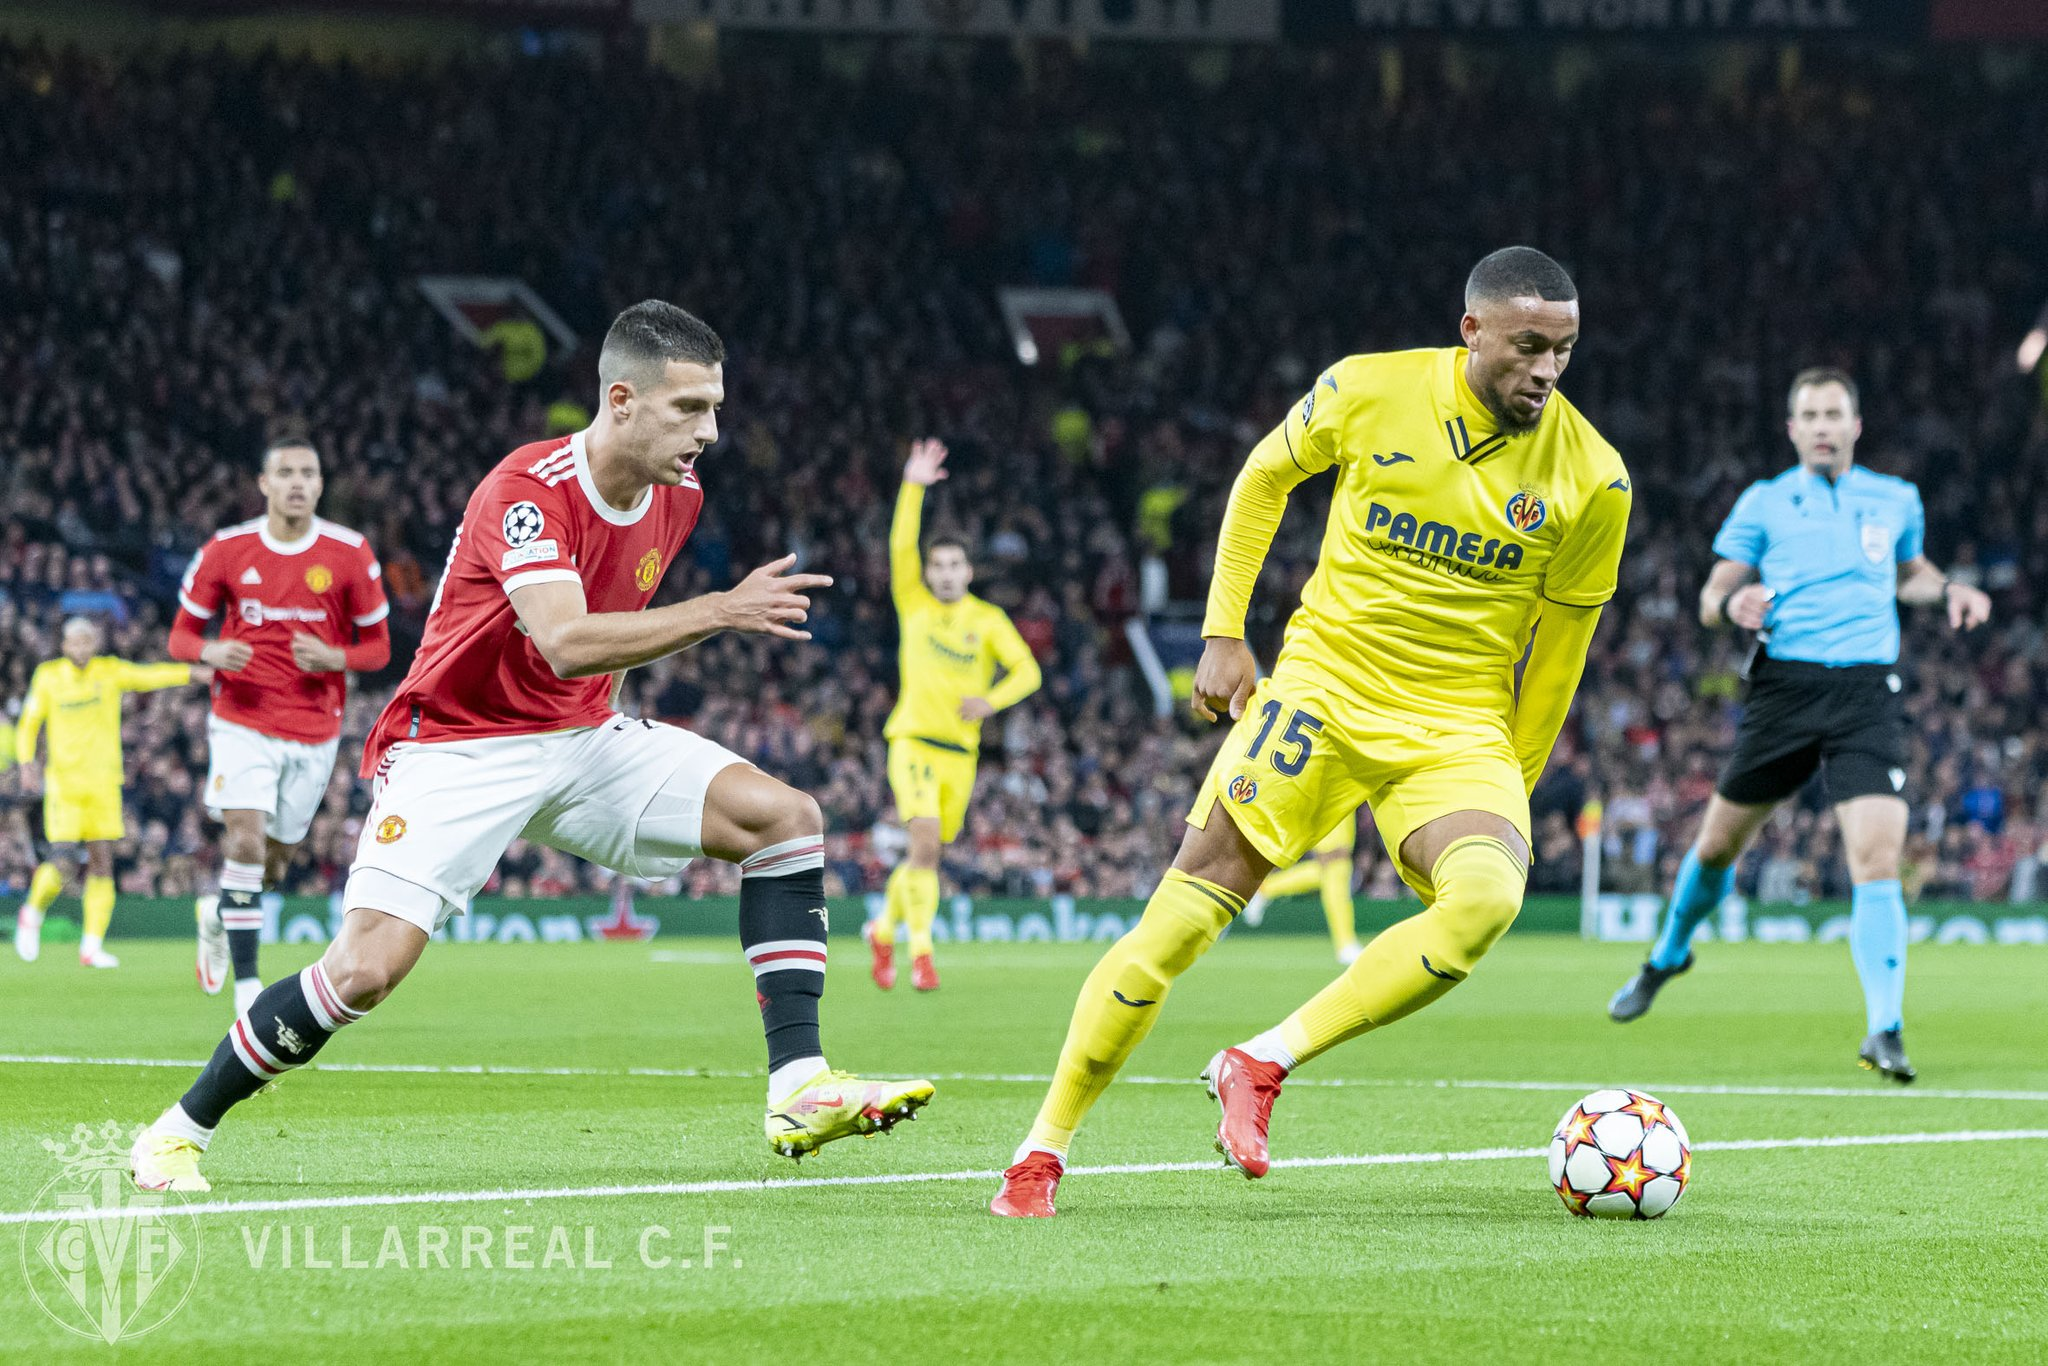 The ball battle between Man United players against Villarreal